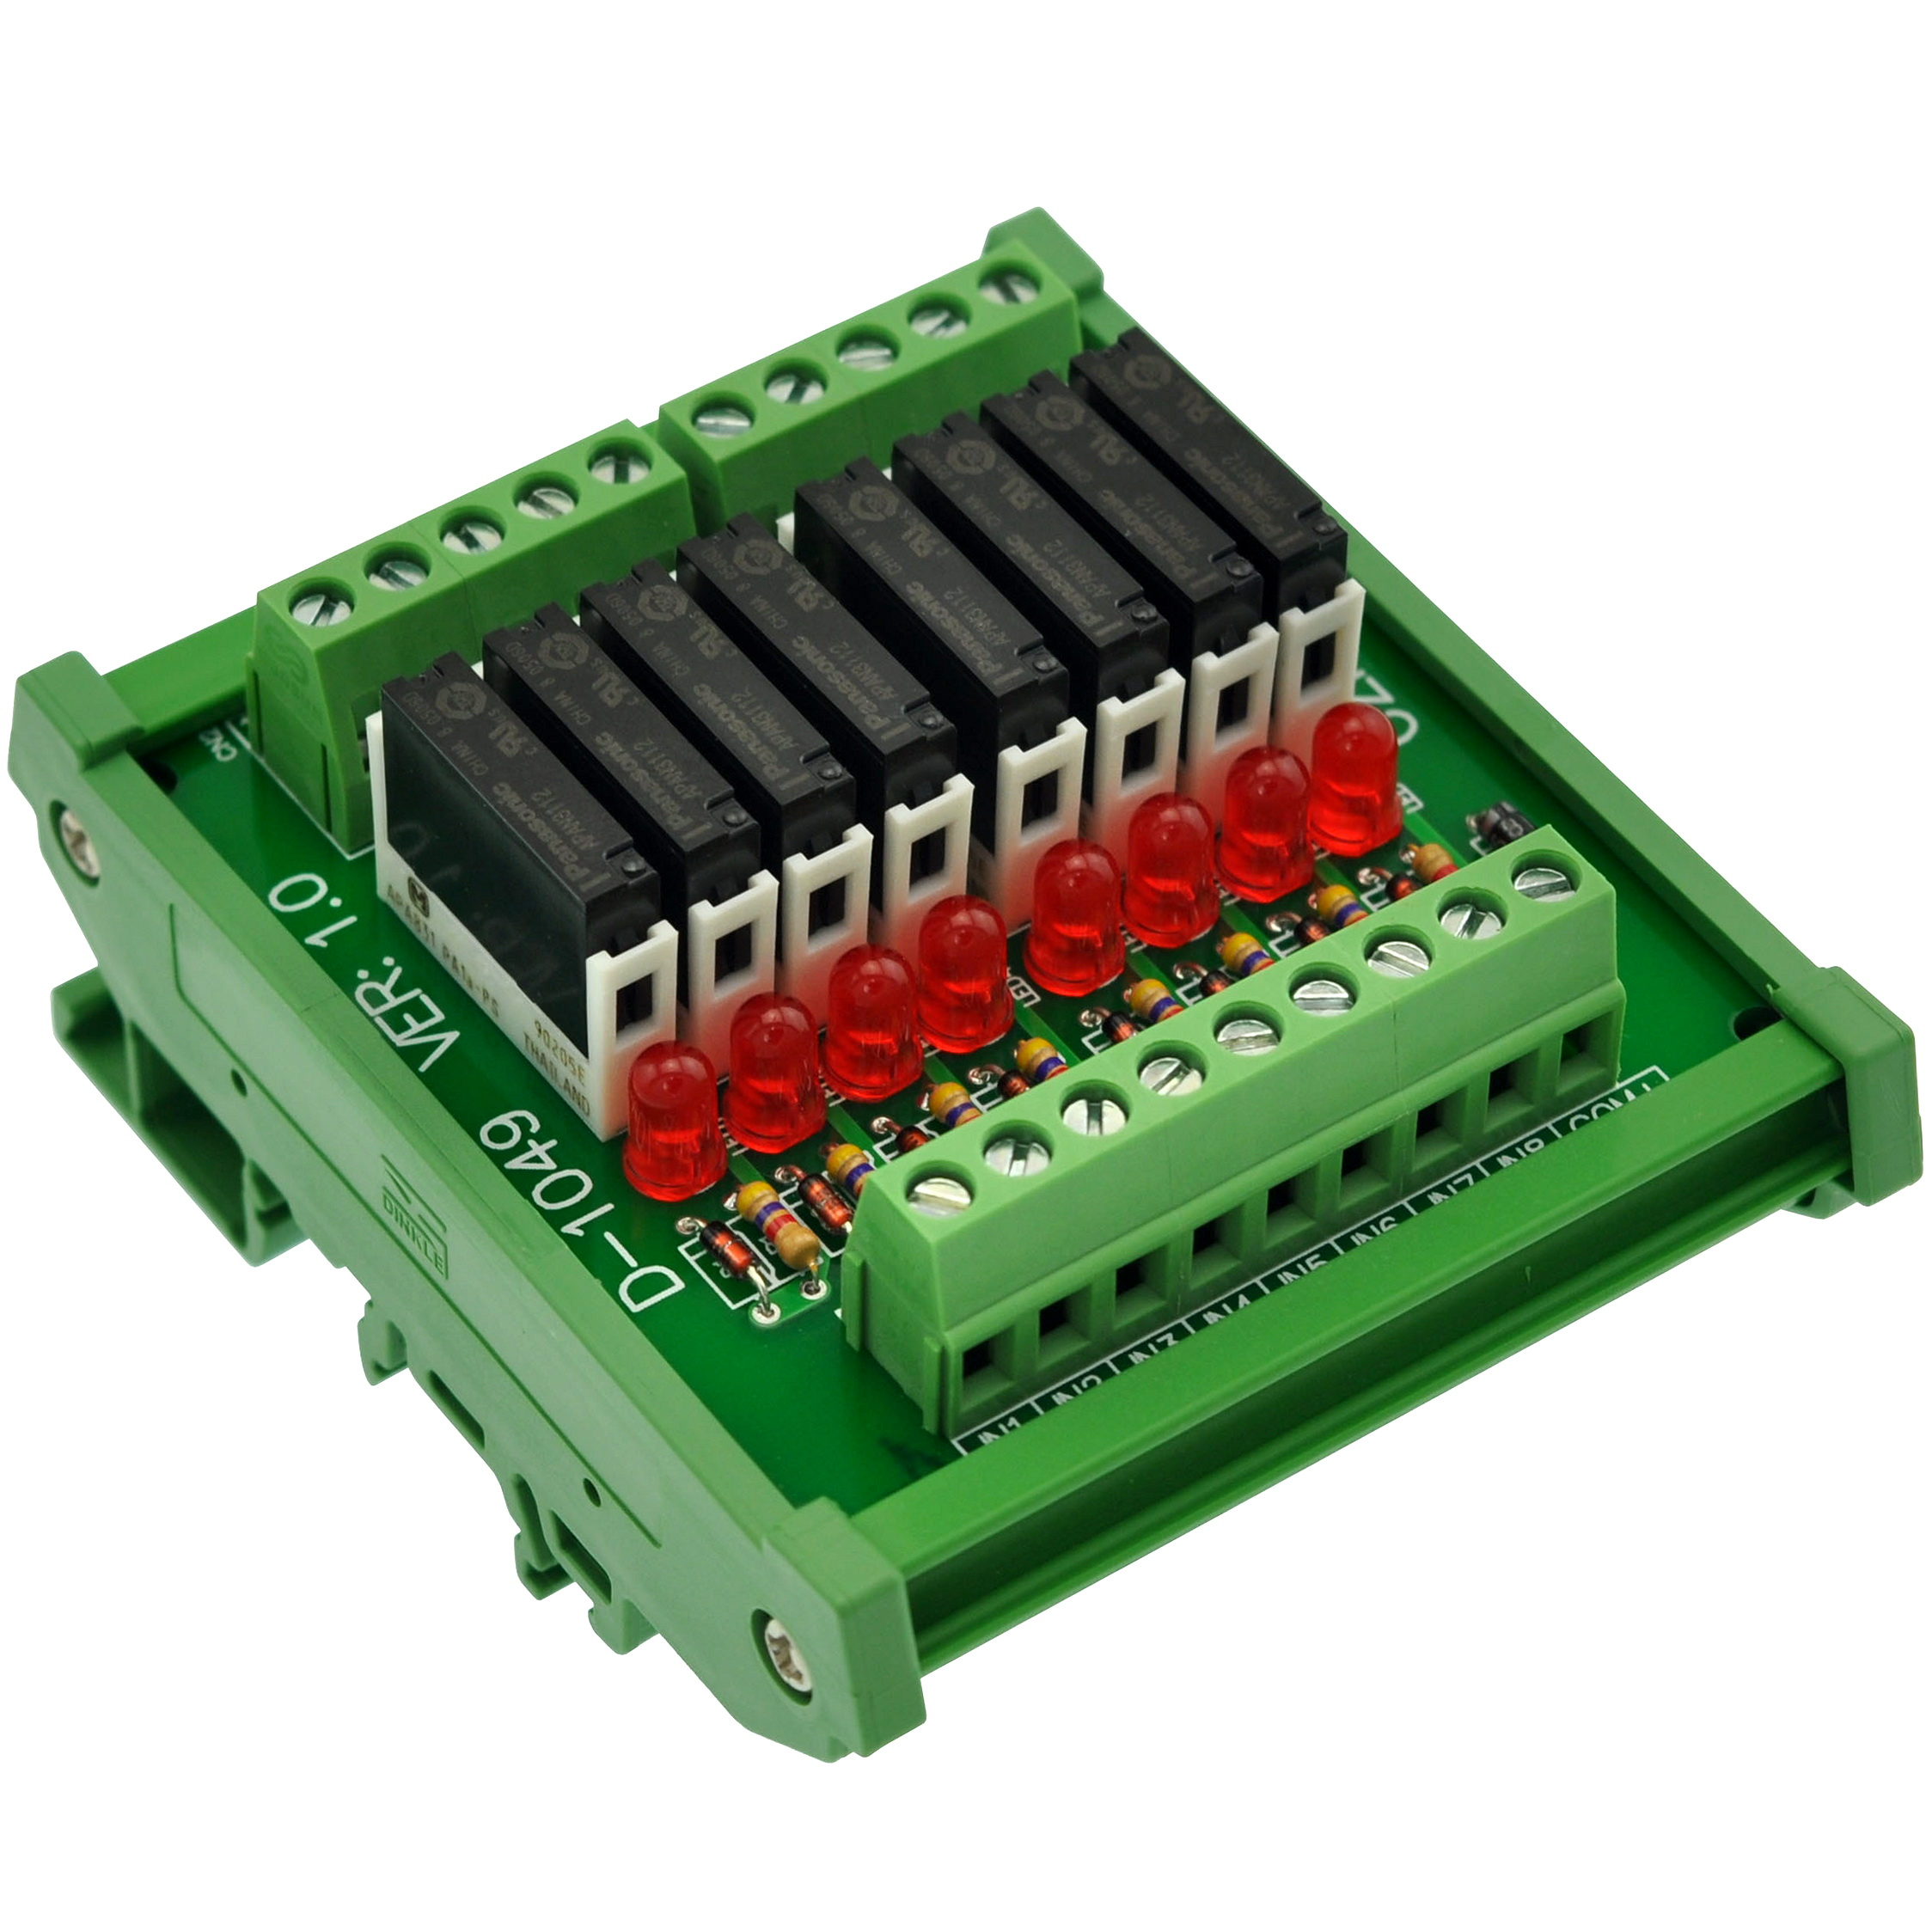 Slim DIN Rail Mount DC12V Sink/NPN 8 SPST NO 5A Power Relay Module, PA1a 12V-in Electronics Stocks from Electronic Components & Supplies